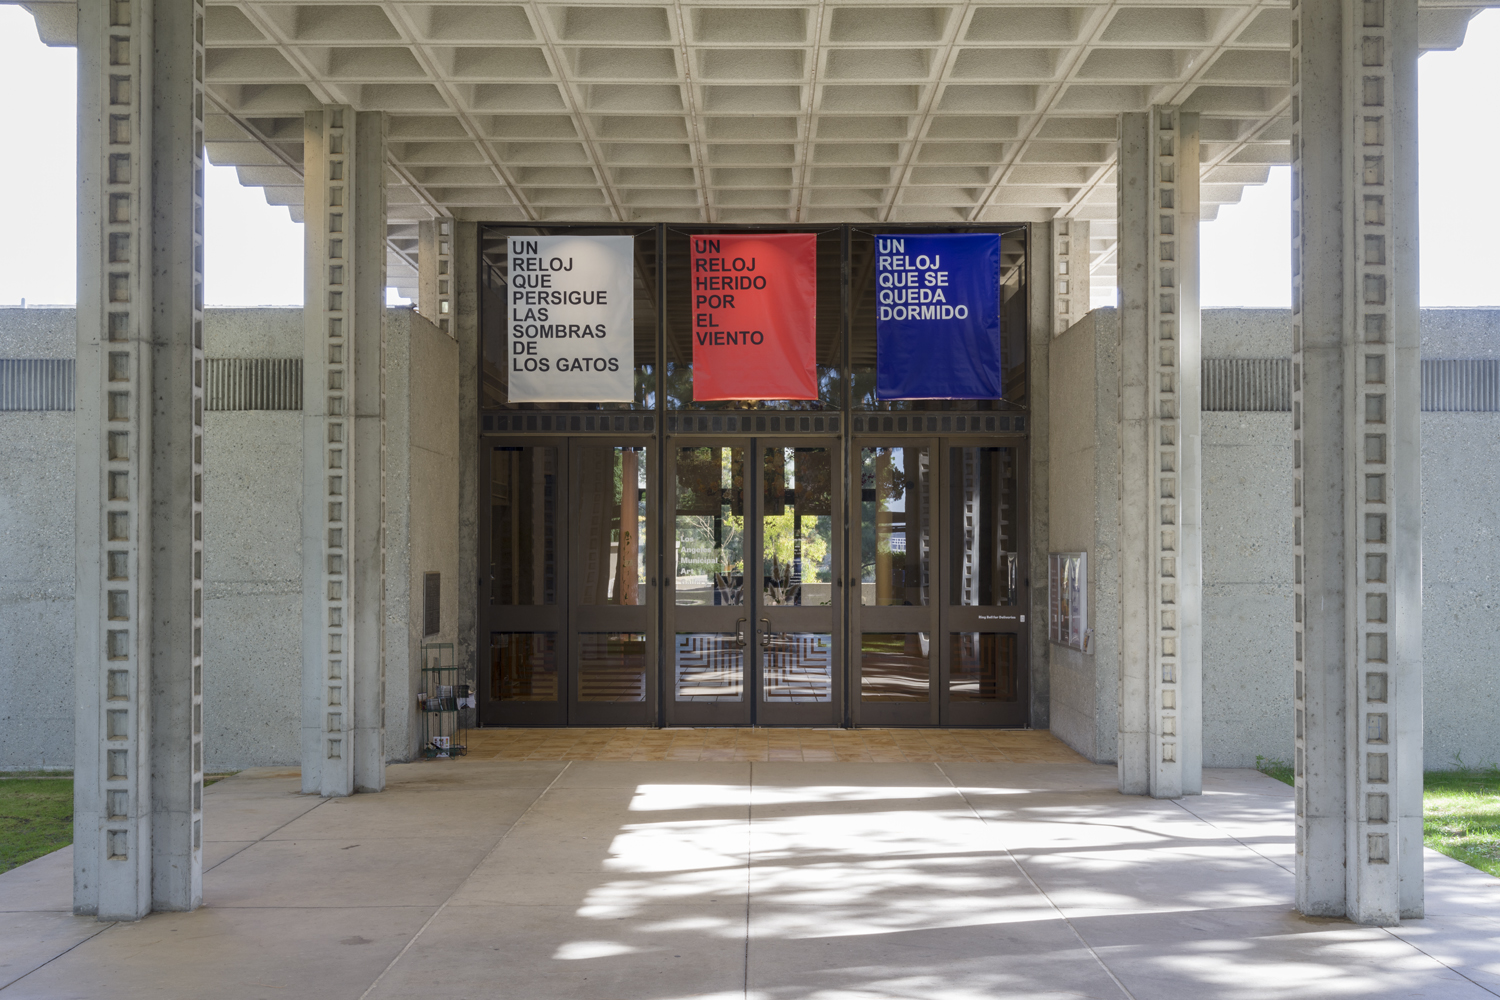 There are three artworks hanging from the ceiling by David Horvitz facing the doors outside of the art gallery. The left sign is white with black lettering that says